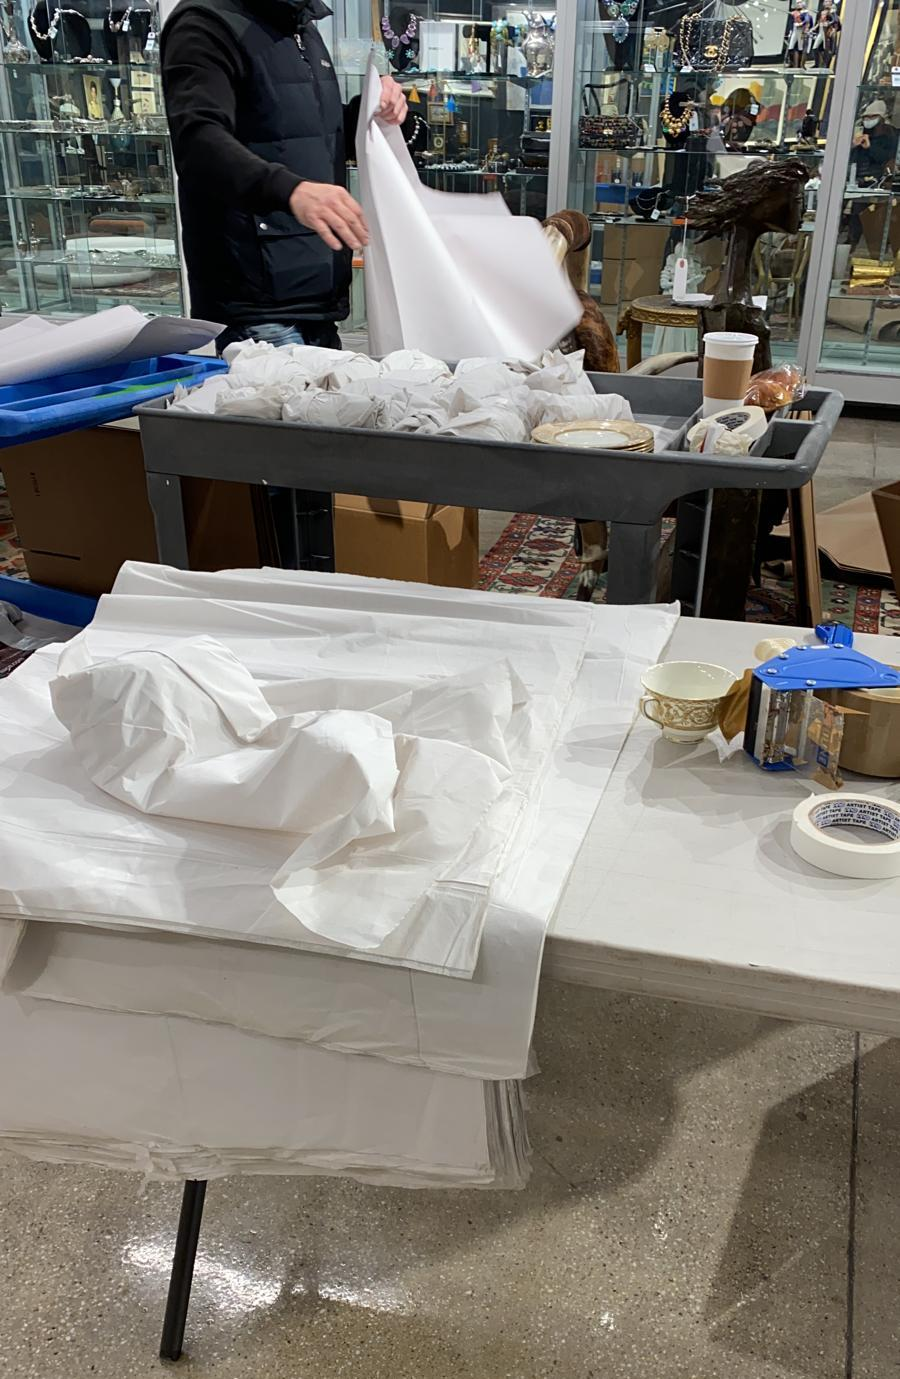 Packing Porcelain Pieces at Showplace in New York